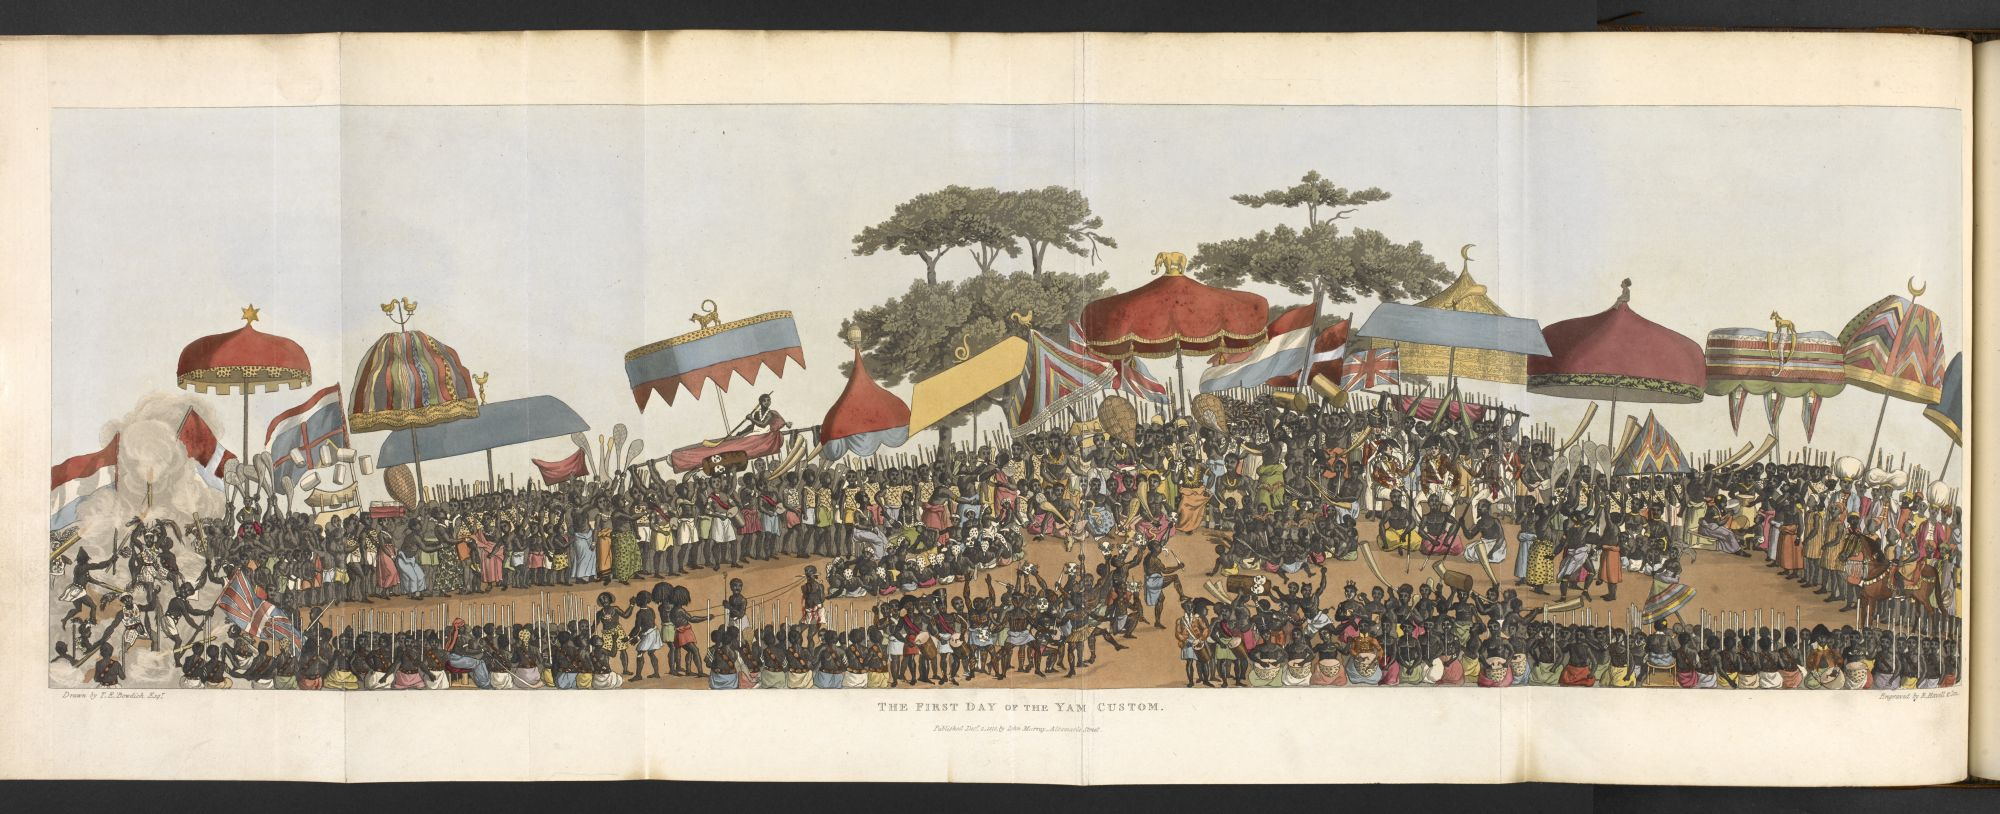 Account by Thomas Edward Bowdich (c. 1791–1824) of the Asante kingdom (modern Ghana), which he visited in 1816.